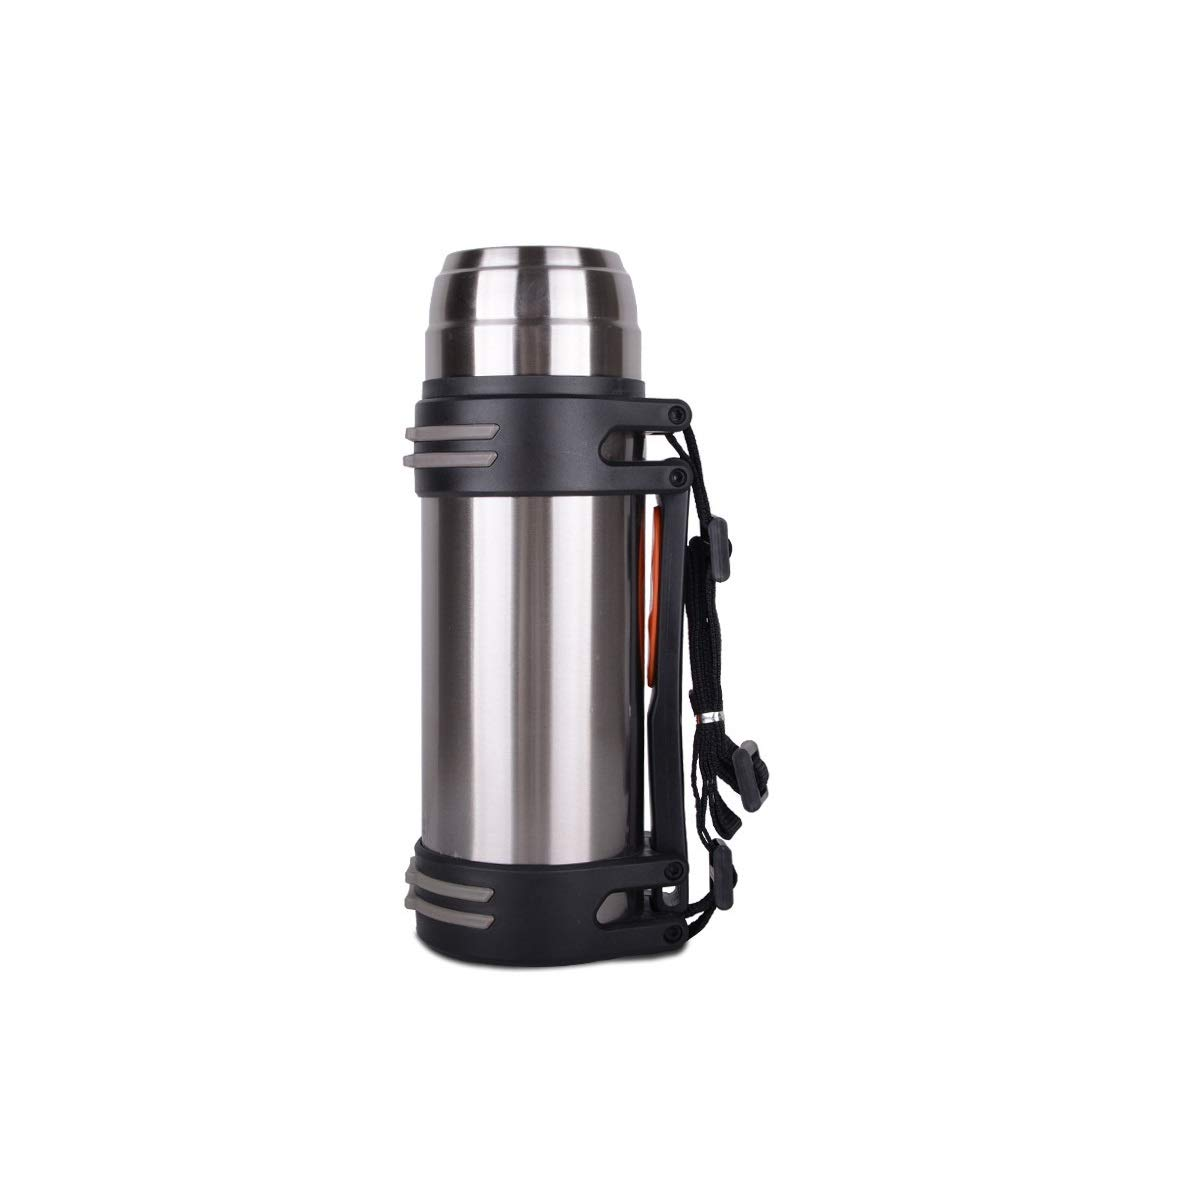 Tongboshi Insulation Cup, Outdoor Household Travel Multi-Purpose Insulated Water Bottle, Large Capacity Water Cup, Sports Portable Army Fan Stainless Steel Large Capacity Car Water Cup, Silver